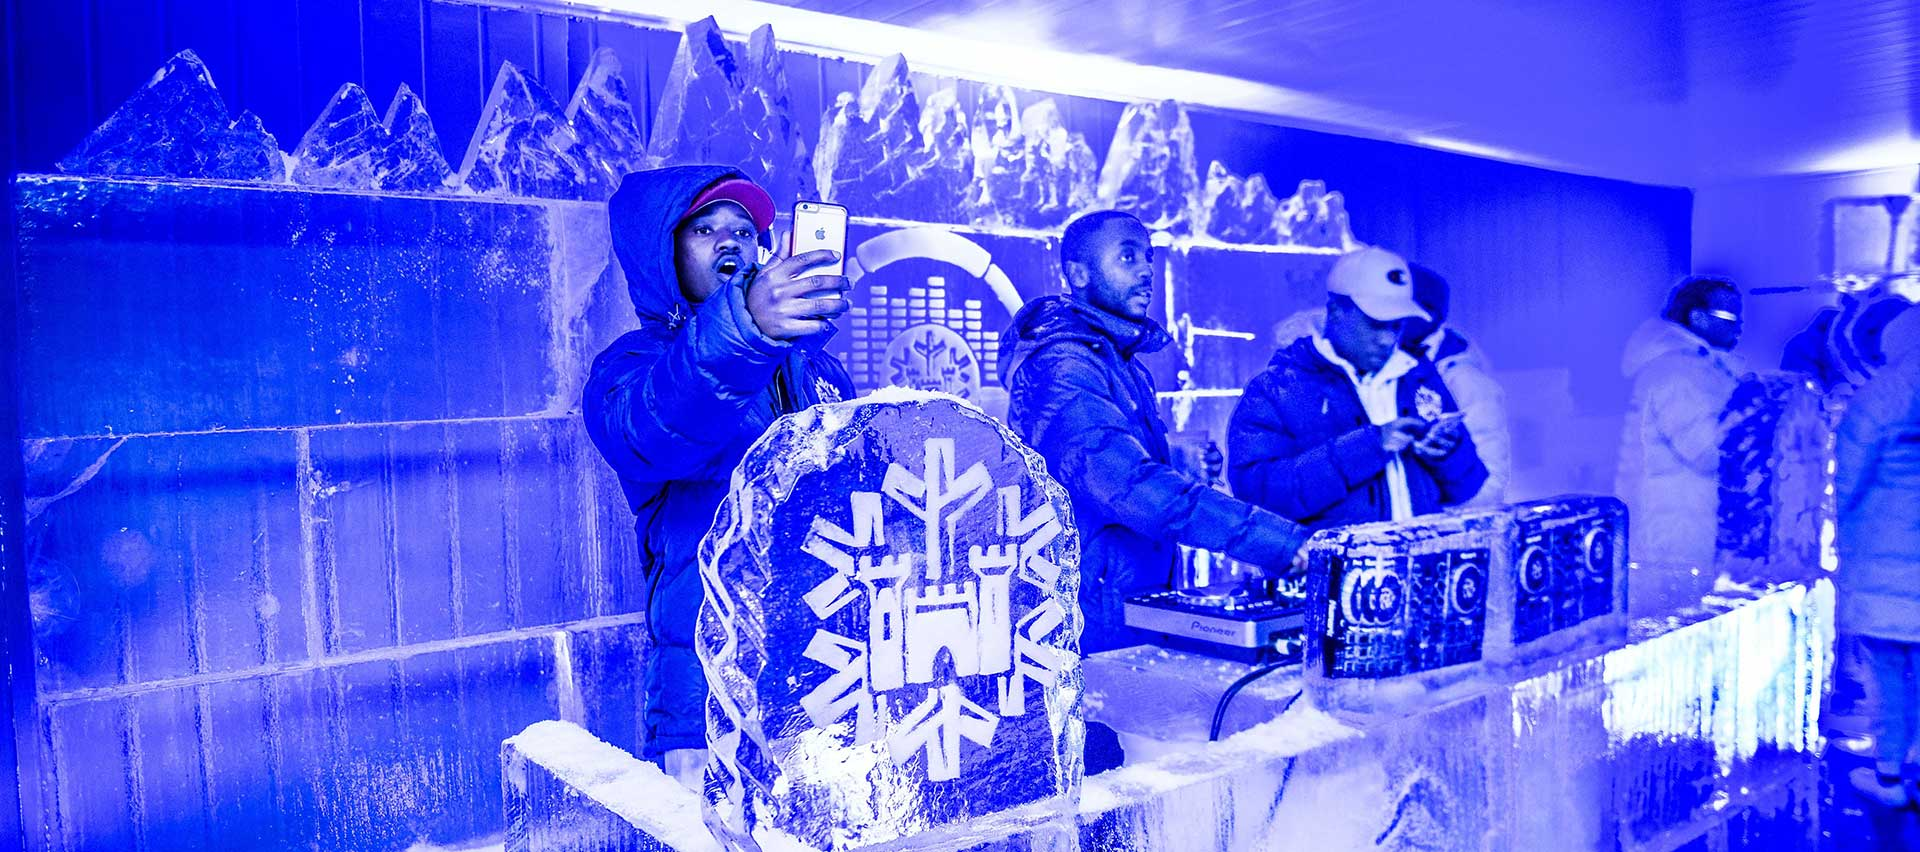 Castle-Lite-Ice-Art-Campaign-x2